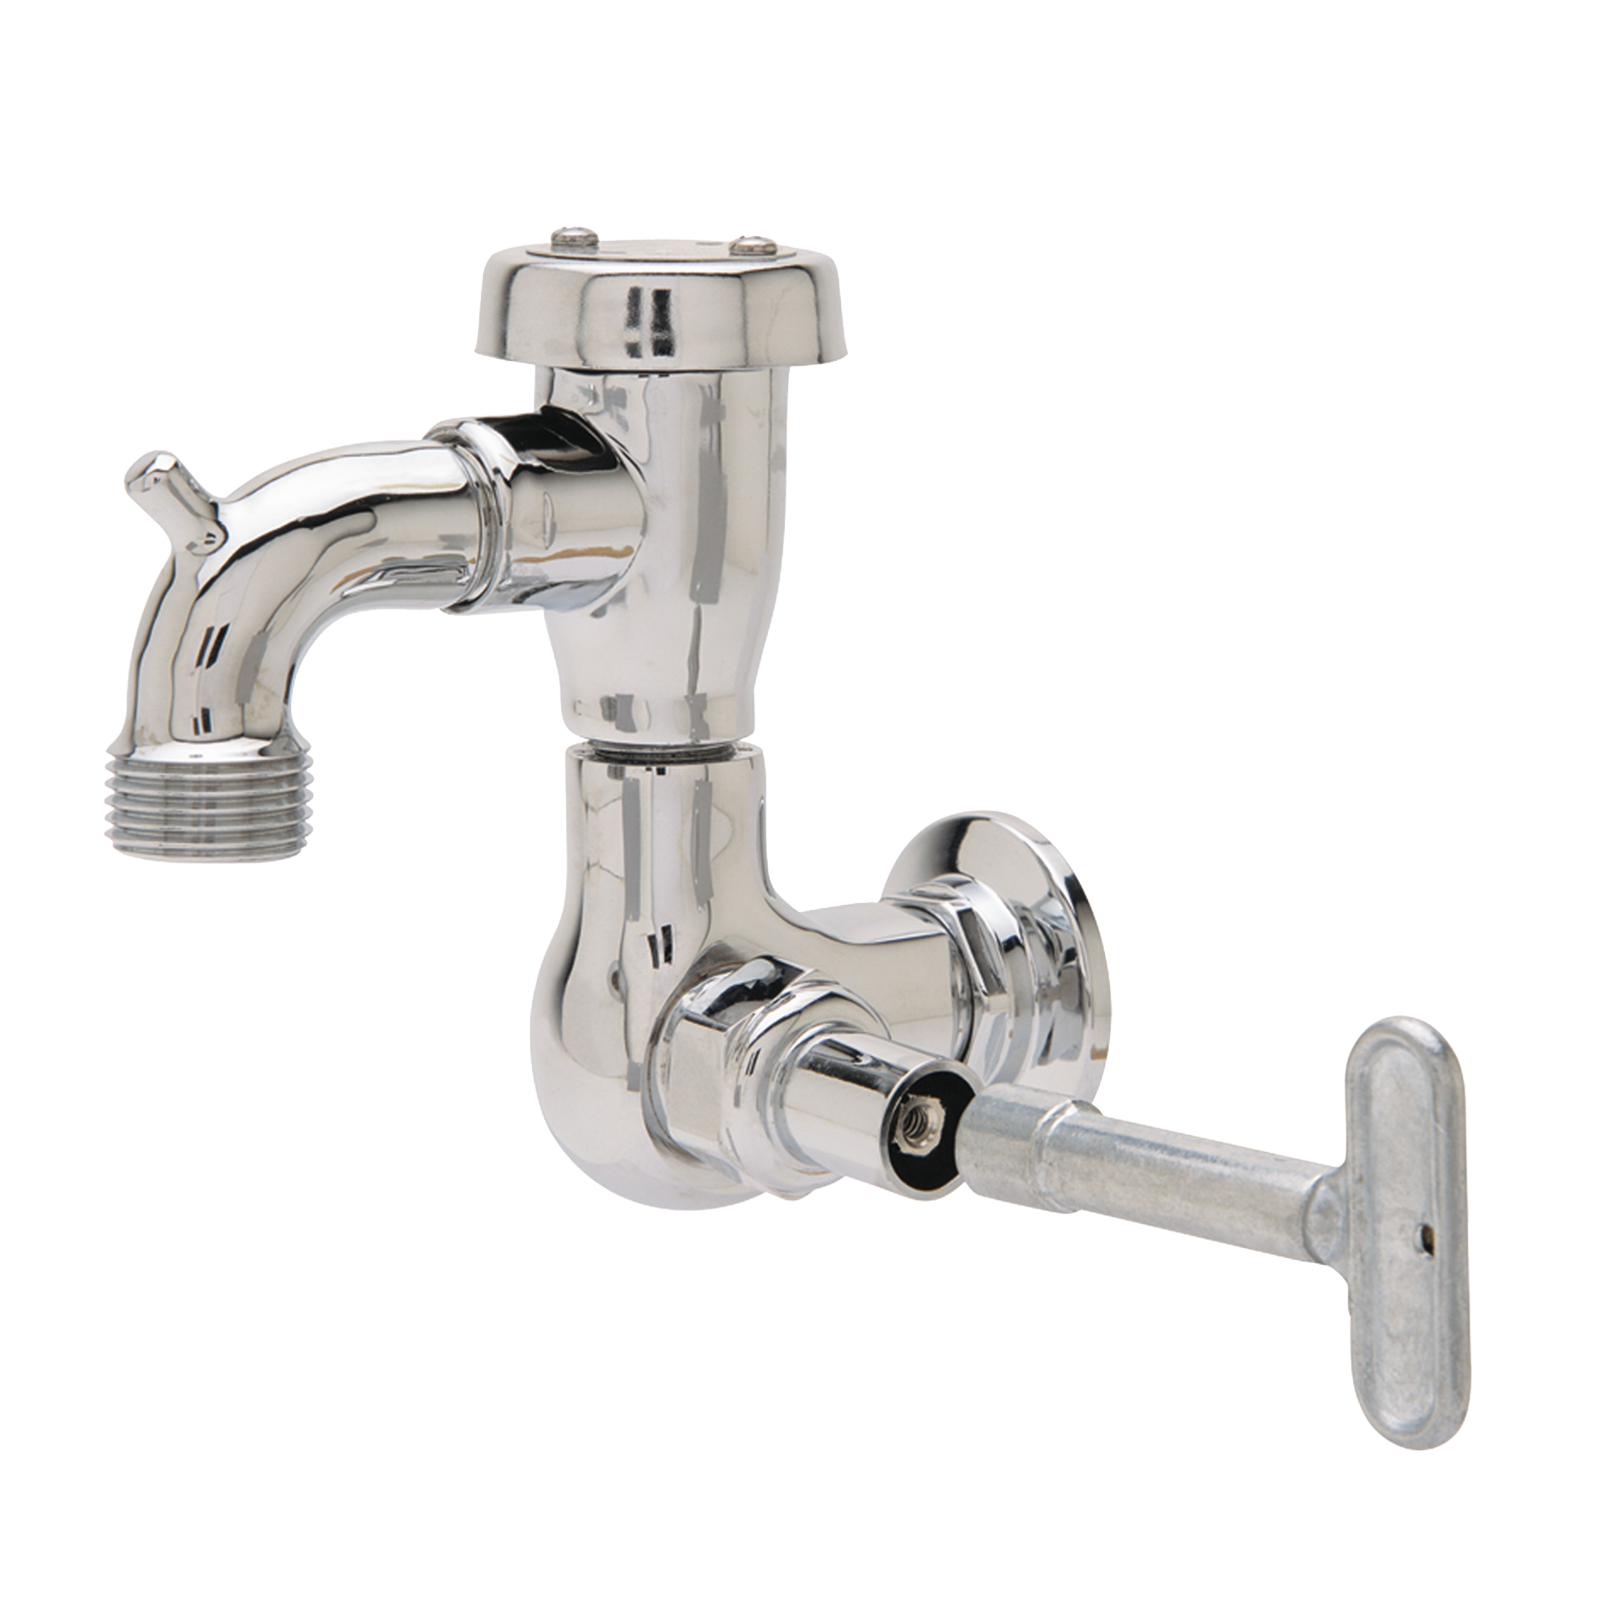 Fisher 29548 faucet, single wall mount, with hose threads